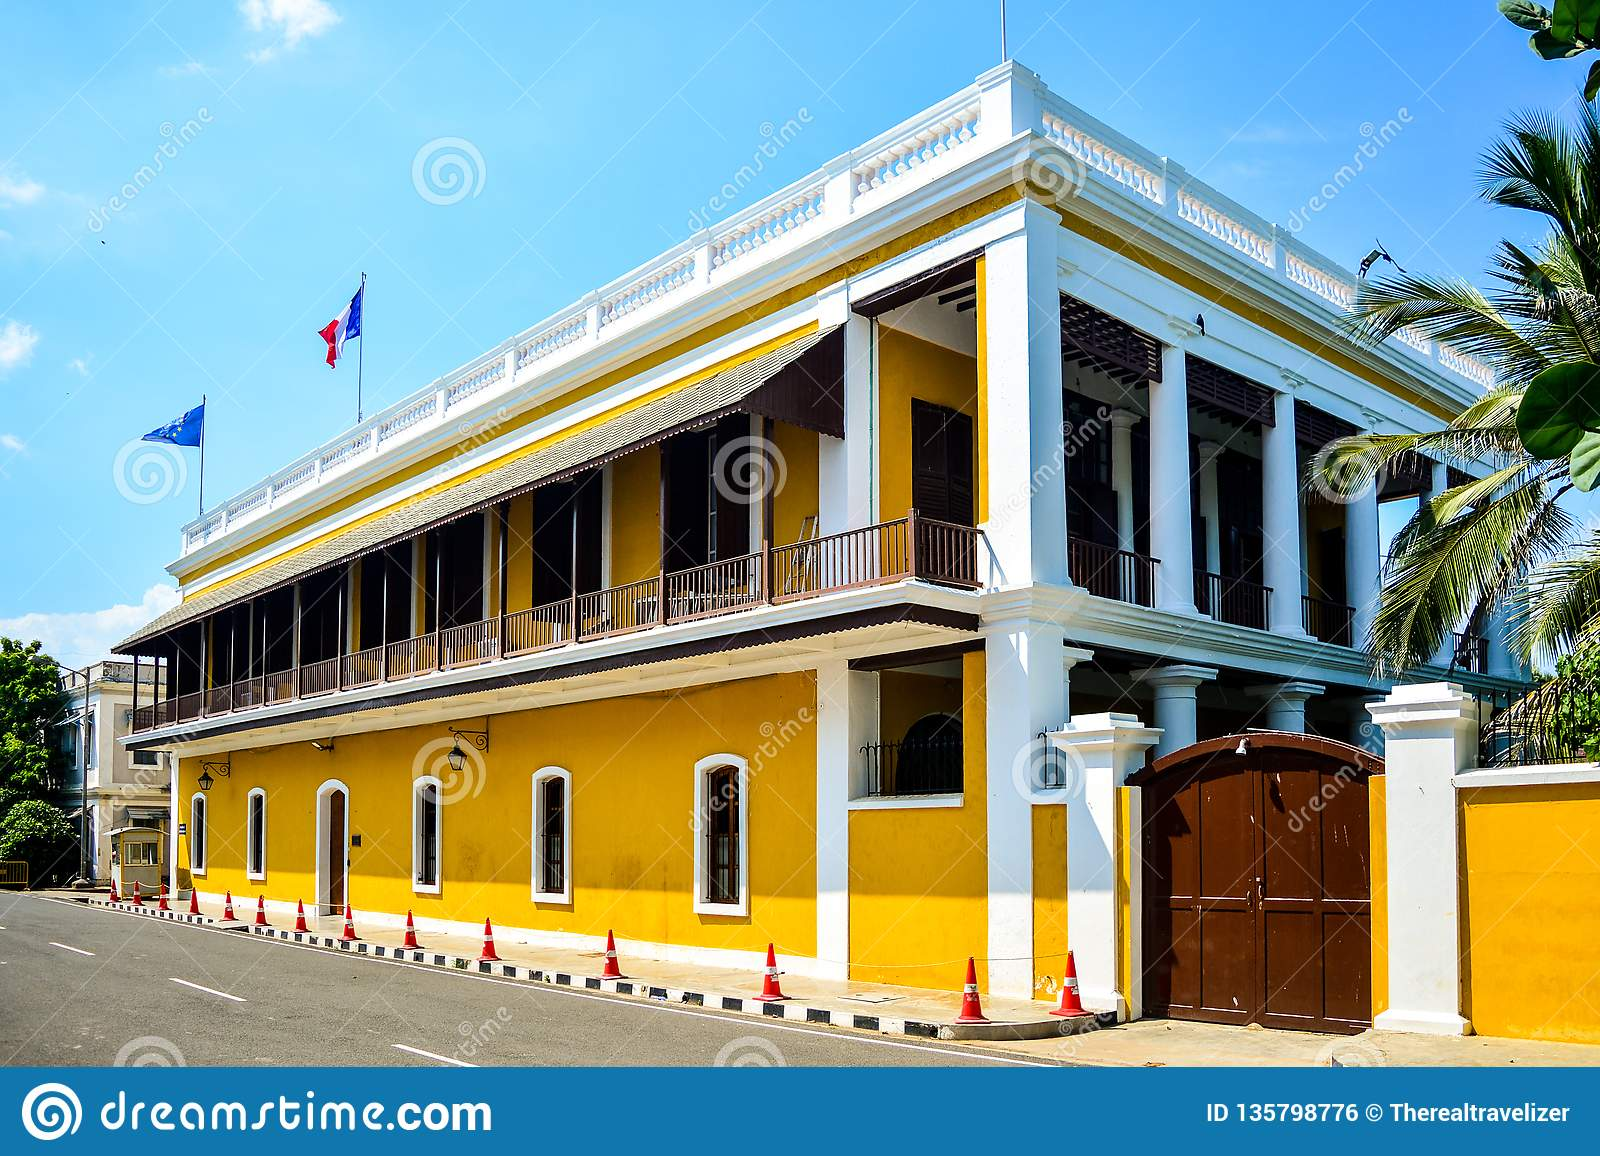 French Consulate Building In Puducherry, India Stock Photo - Image